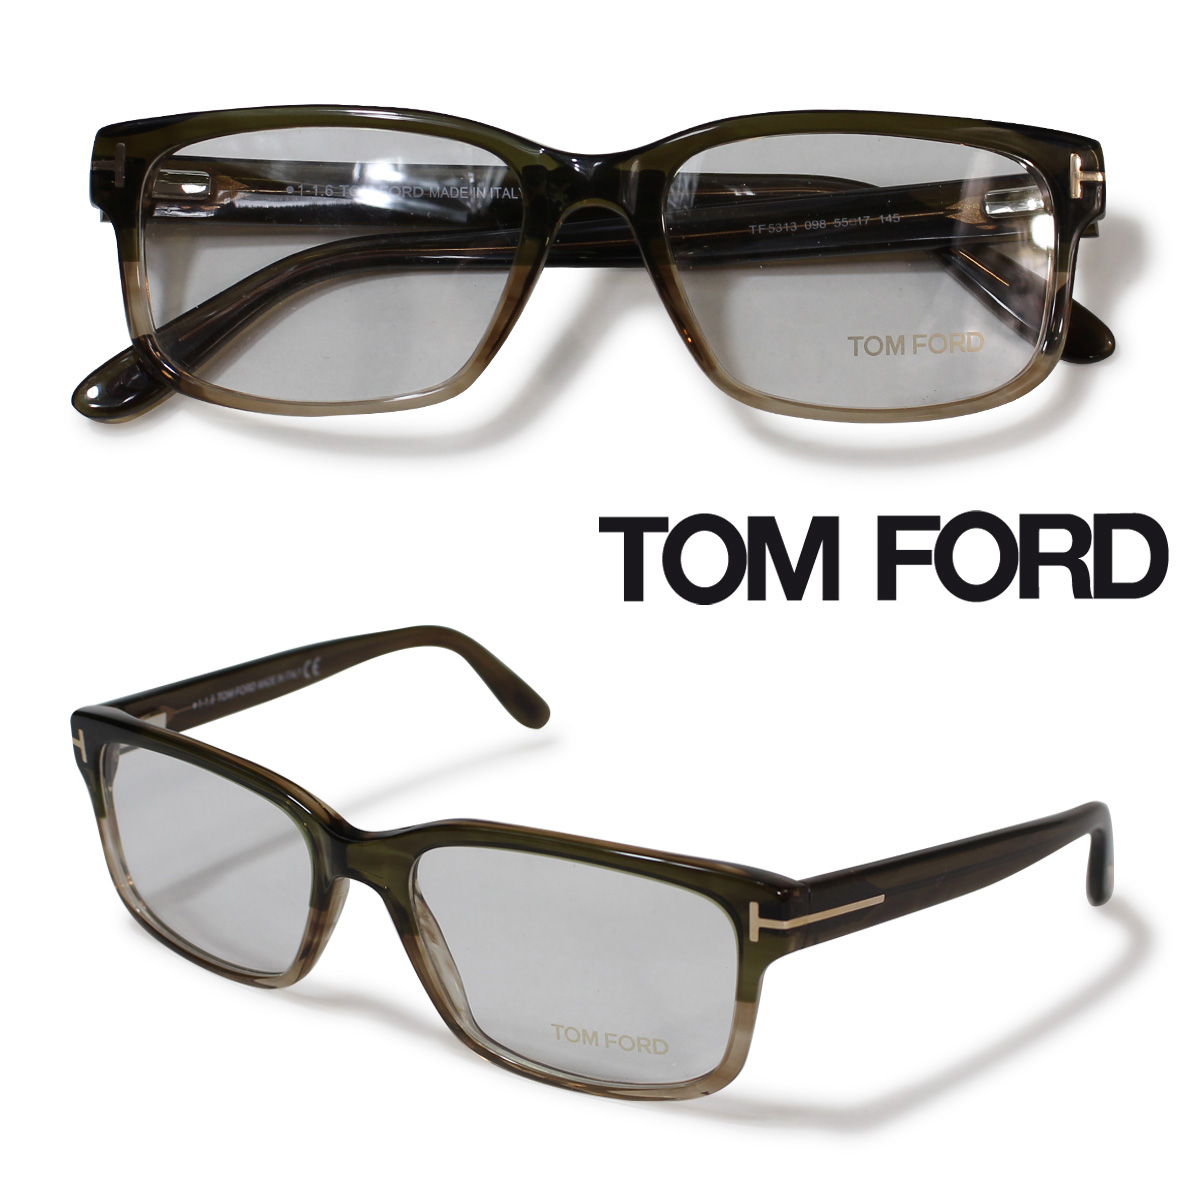 0b9014057787 ... on the lens from the temple is decorated in Tom Ford features.  Furnished with hand-made in Italy by Marcolin eyewear Center even as  popular as good.